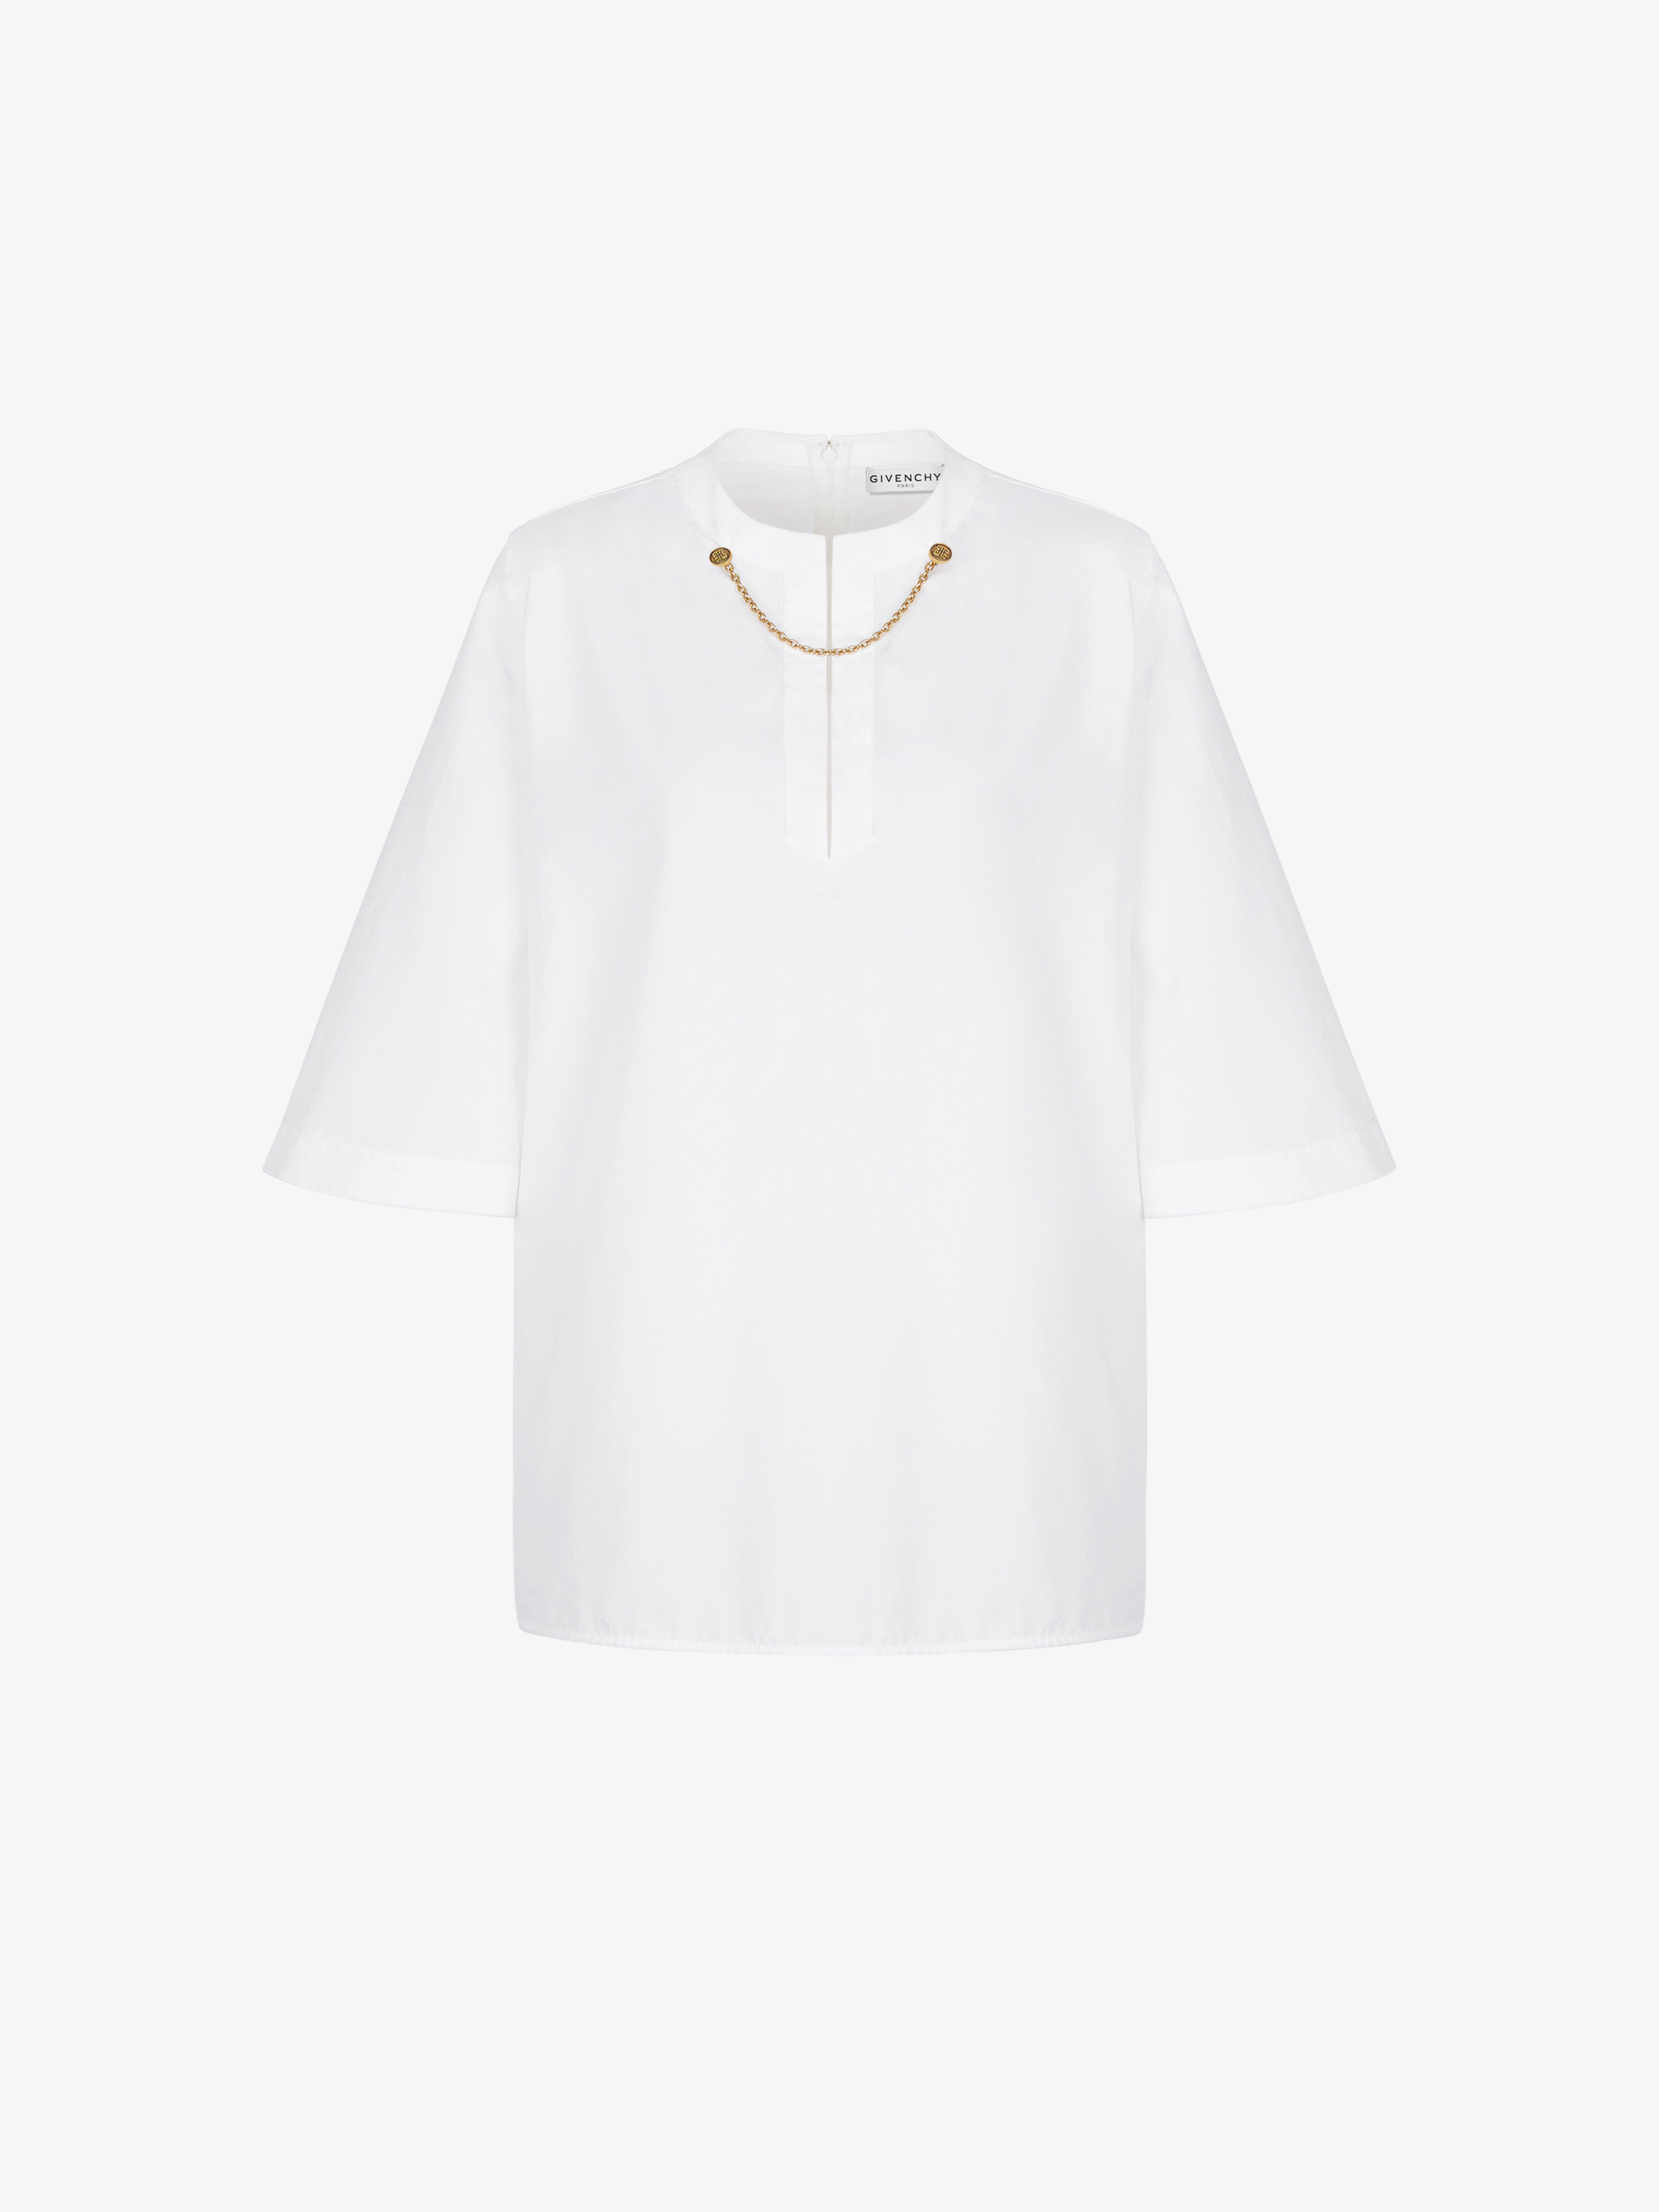 Blouse in cotton with chain collar